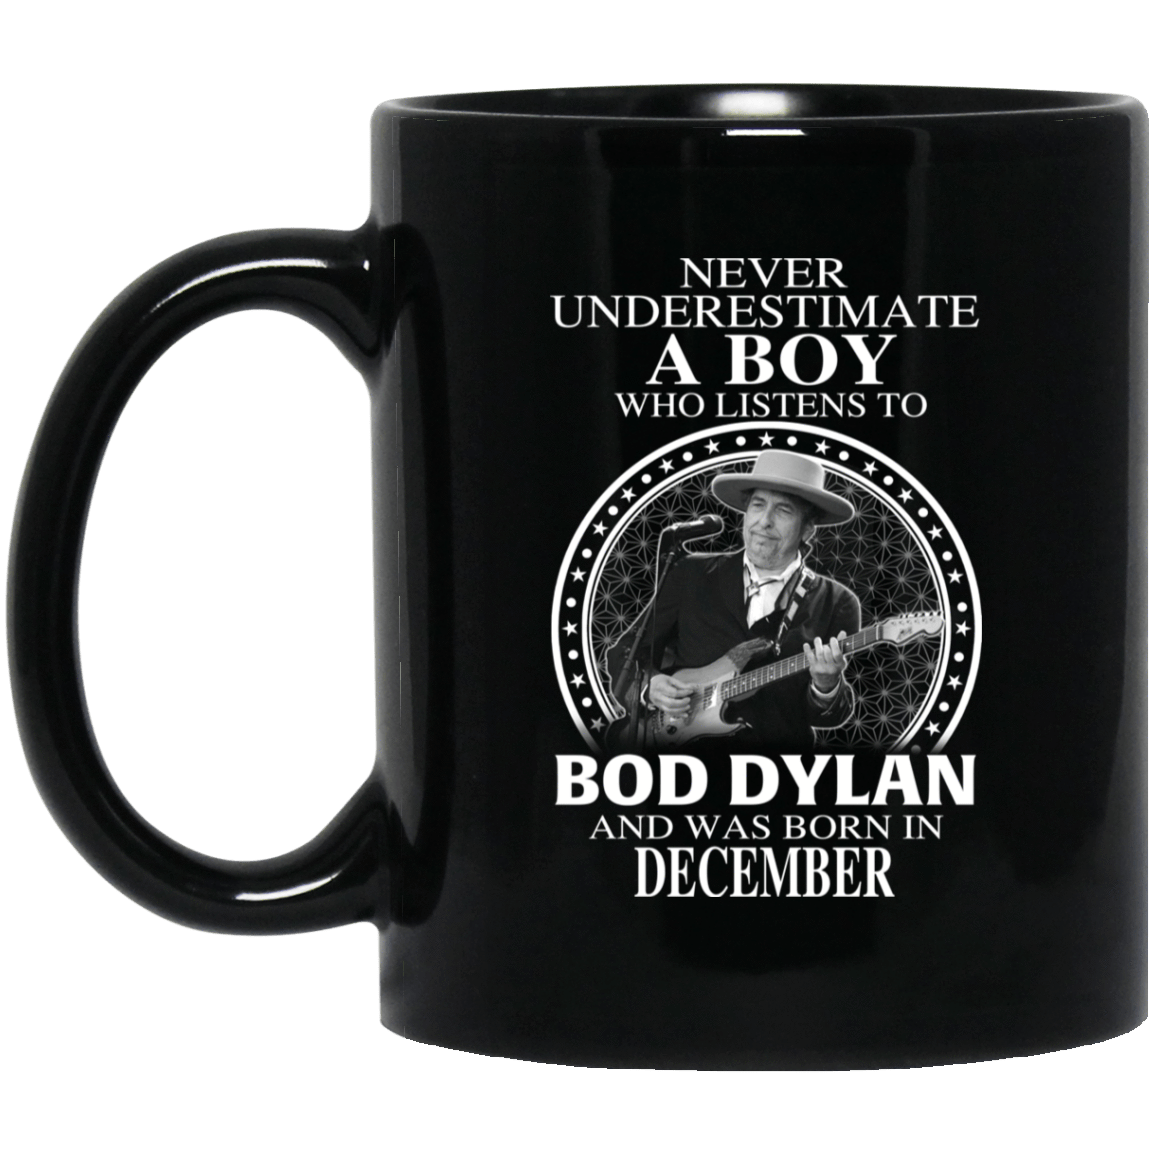 A Boy Who Listens To Bob Dylan And Was Born In December Mug 1065-10181-76153798-49307 - Tee Ript